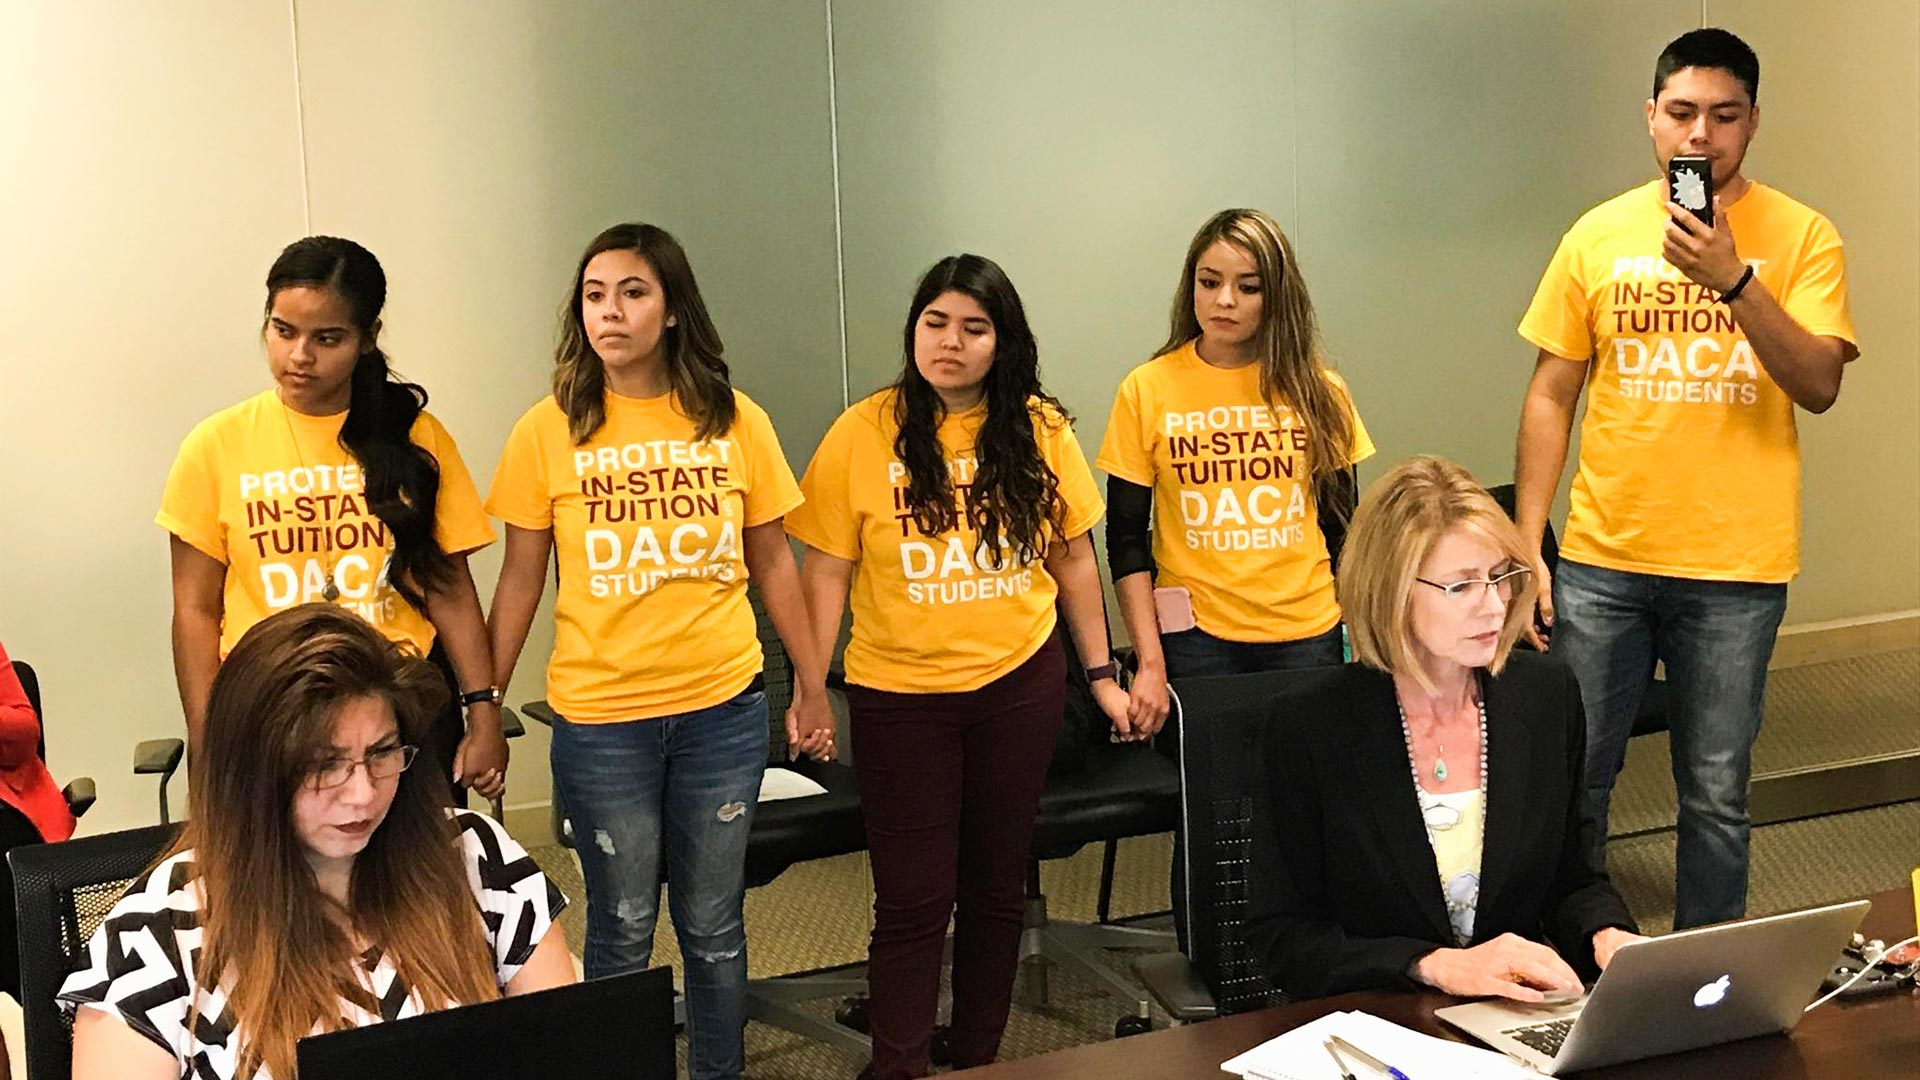 A group stands in support of in-state tuition eligibility for students in Arizona with DACA status at a June 29 Arizona Board of Regents meeting.